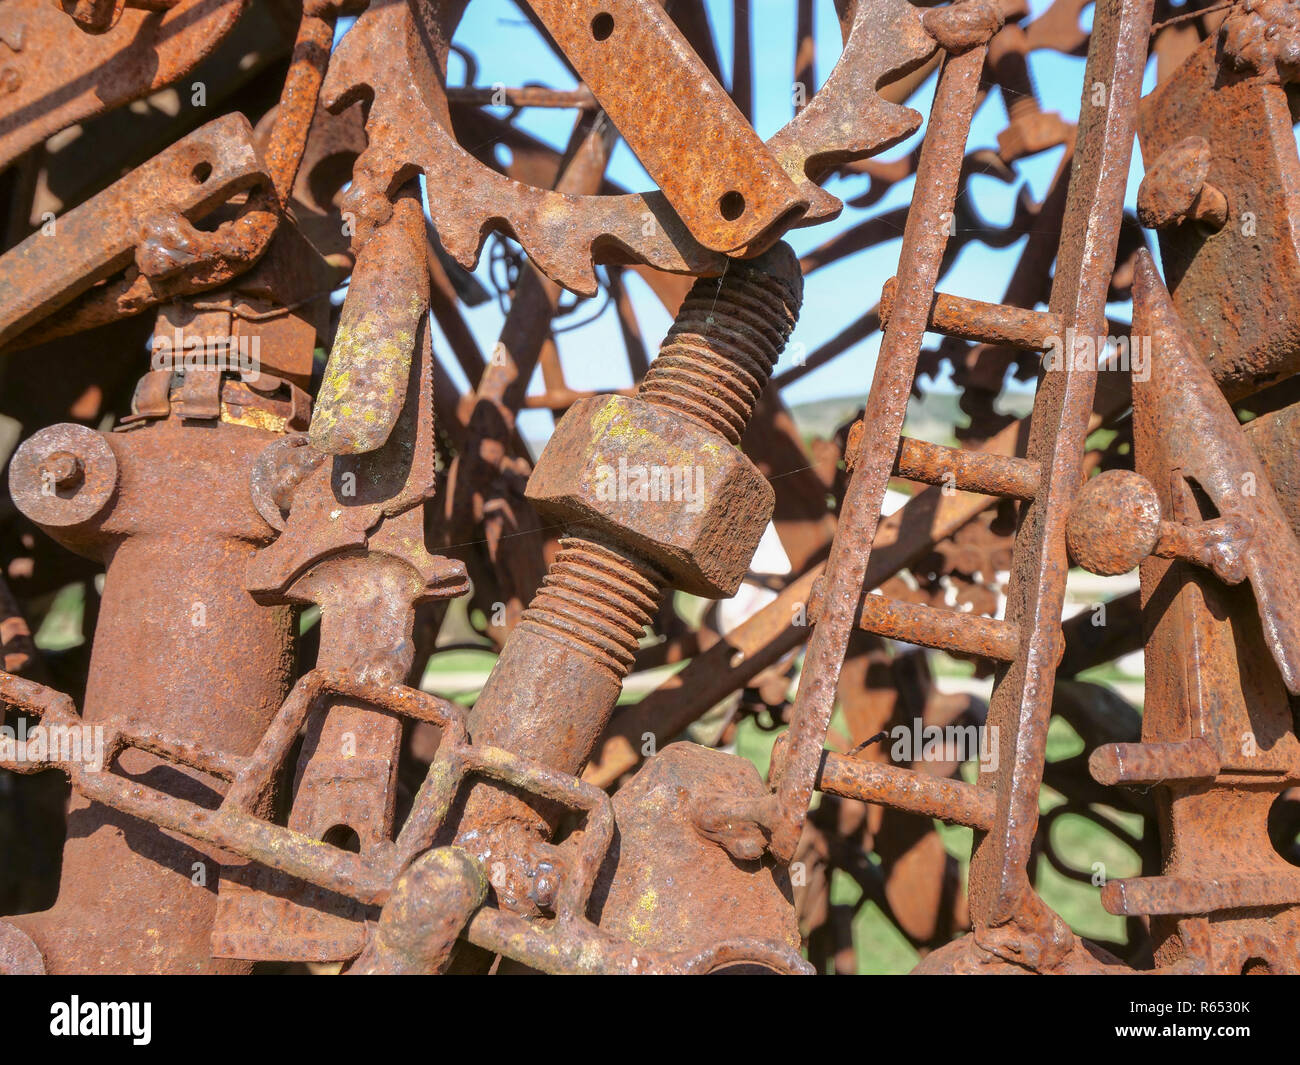 Rusty nuts, bolts and pieces of scrap metal Stock Photo